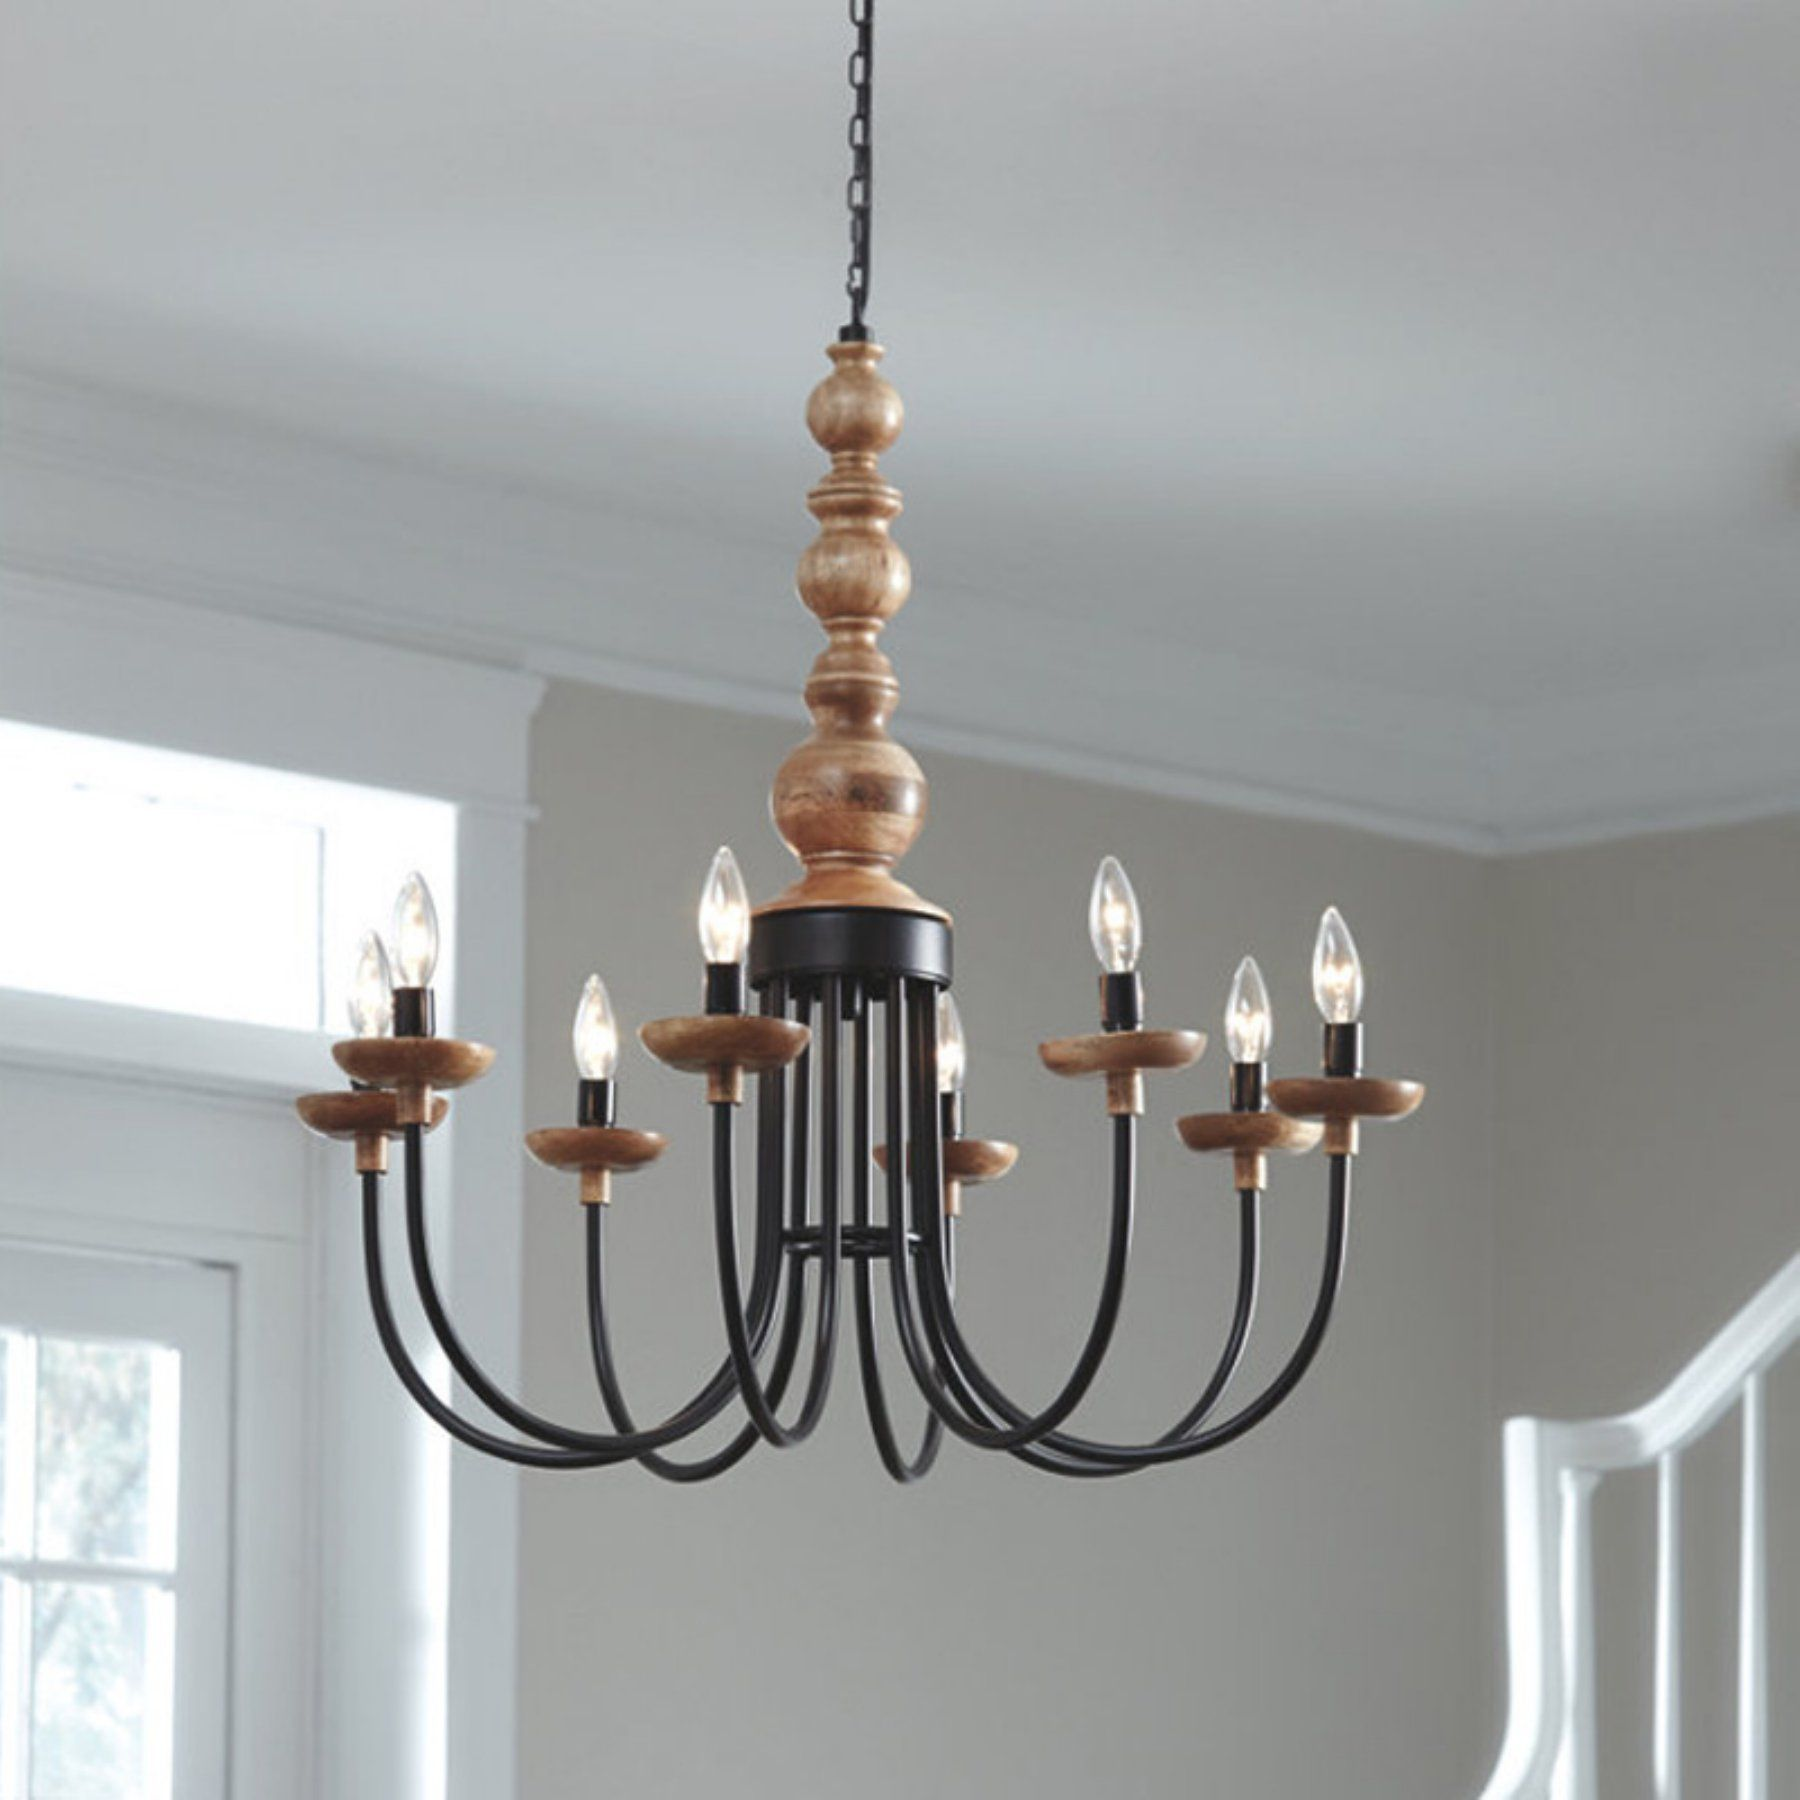 Signature Design By Ashley Fabrice L000498 Chandelier  L000498